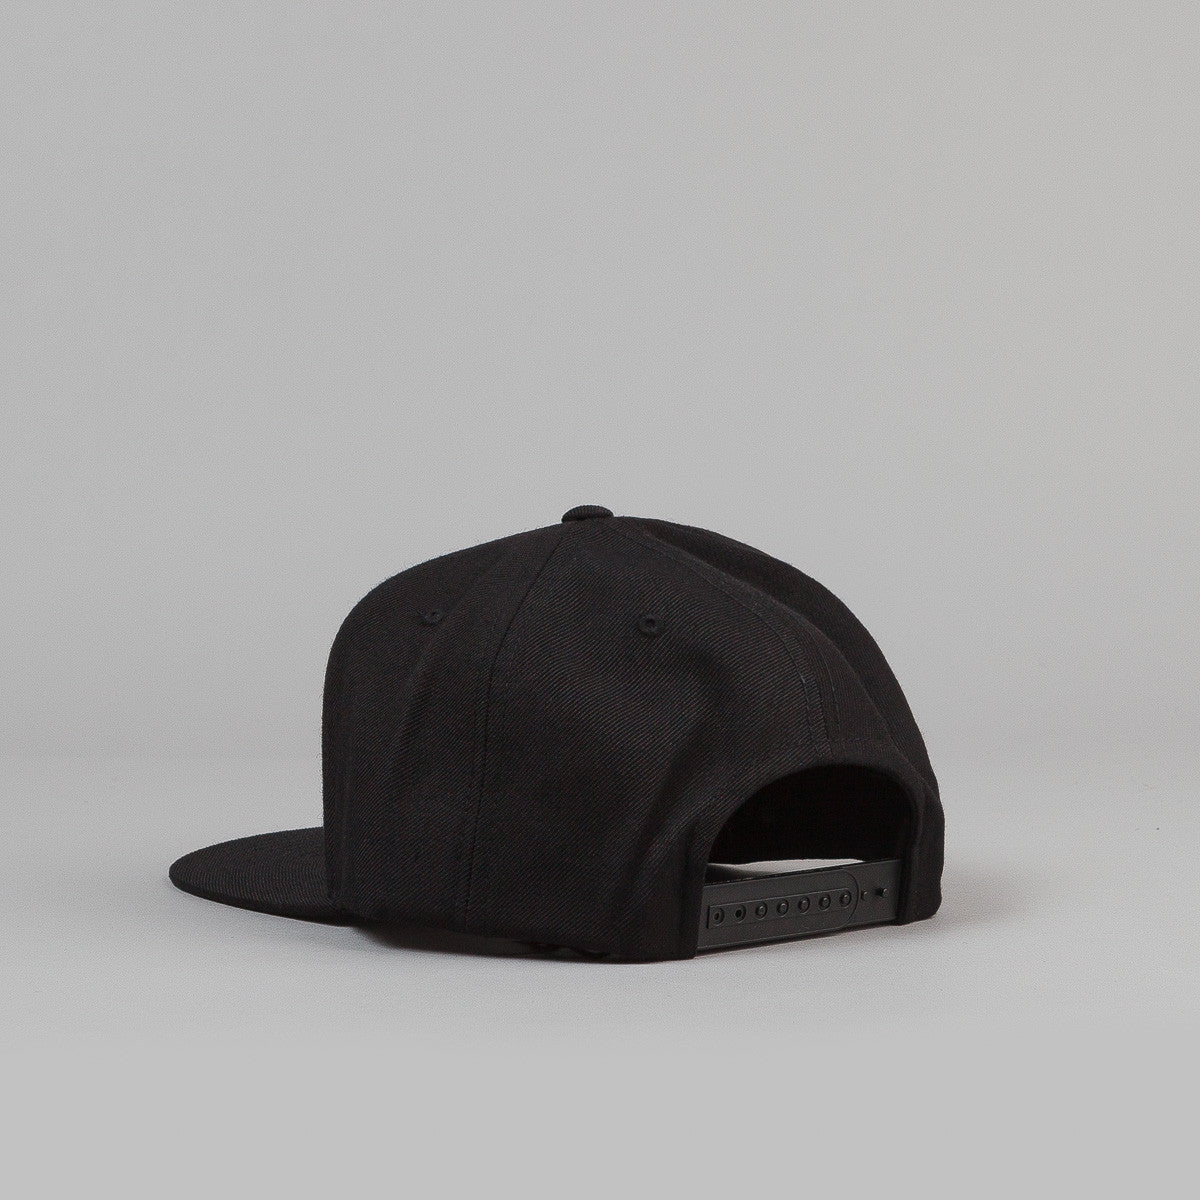 Brixton Oath III 6 Panel Snap Back Cap - Black